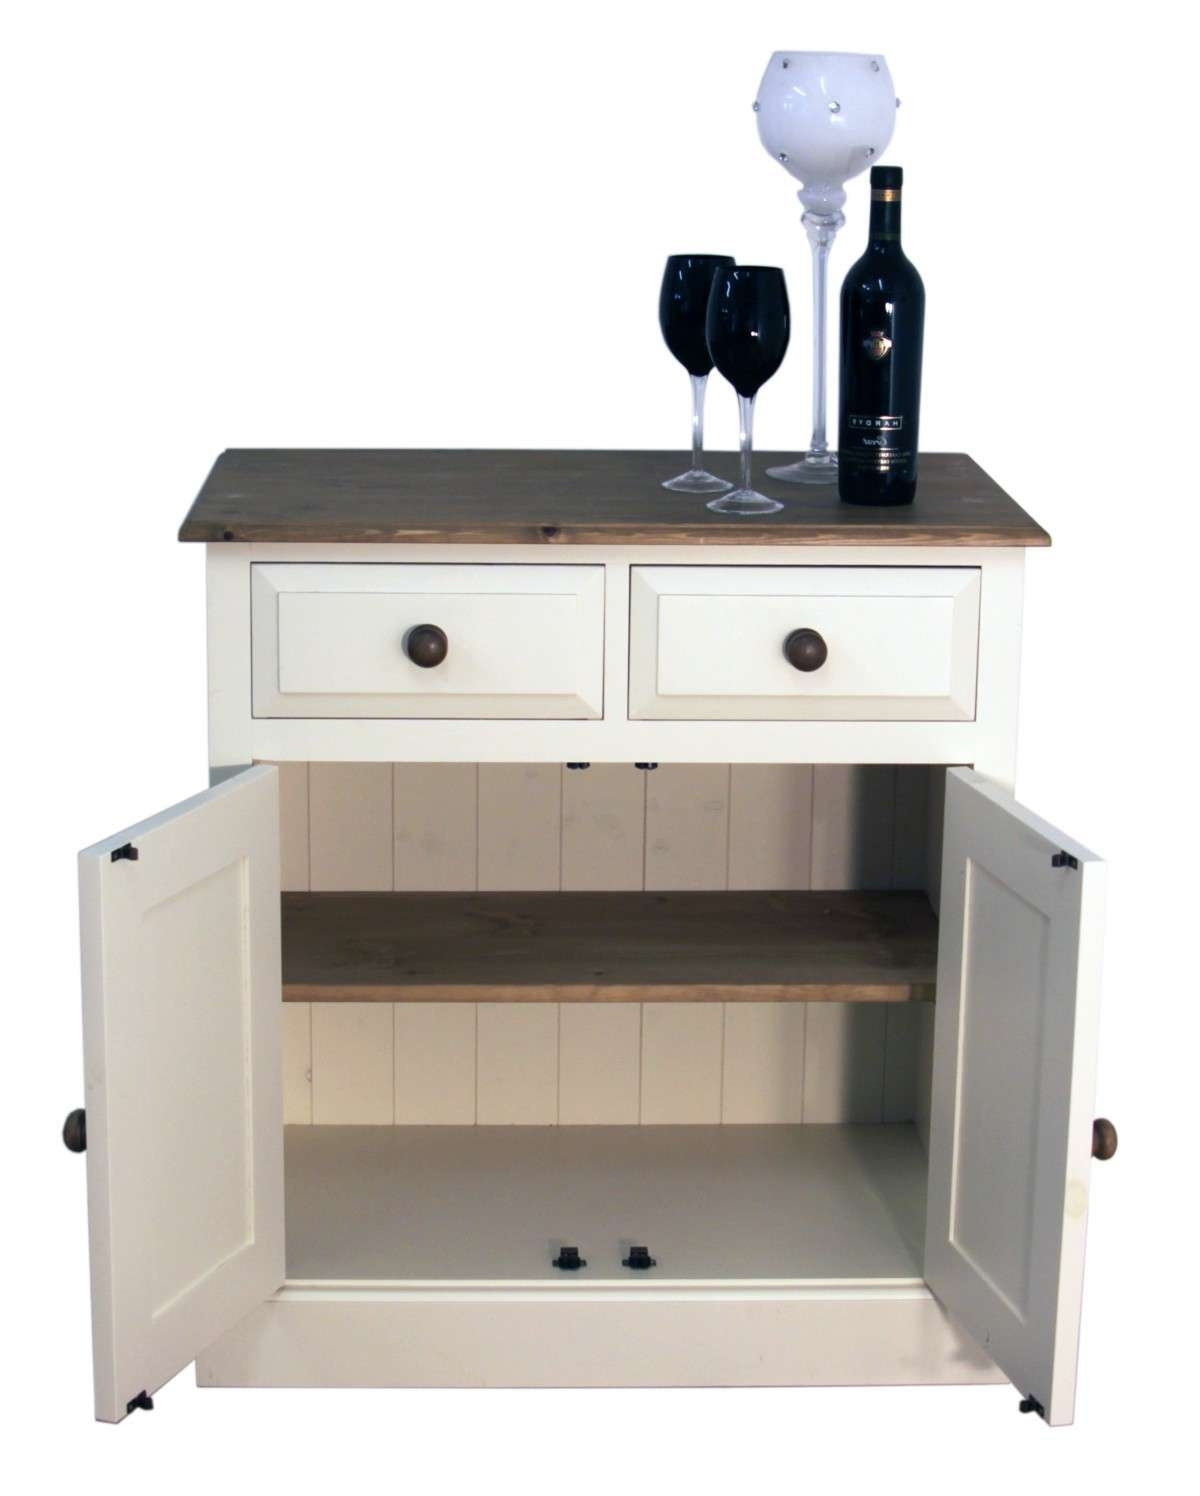 "Doors And Drawers Shallow Depth Sideboard – Available In 2'6"", 3 Intended For Shallow Sideboards (View 6 of 20)"